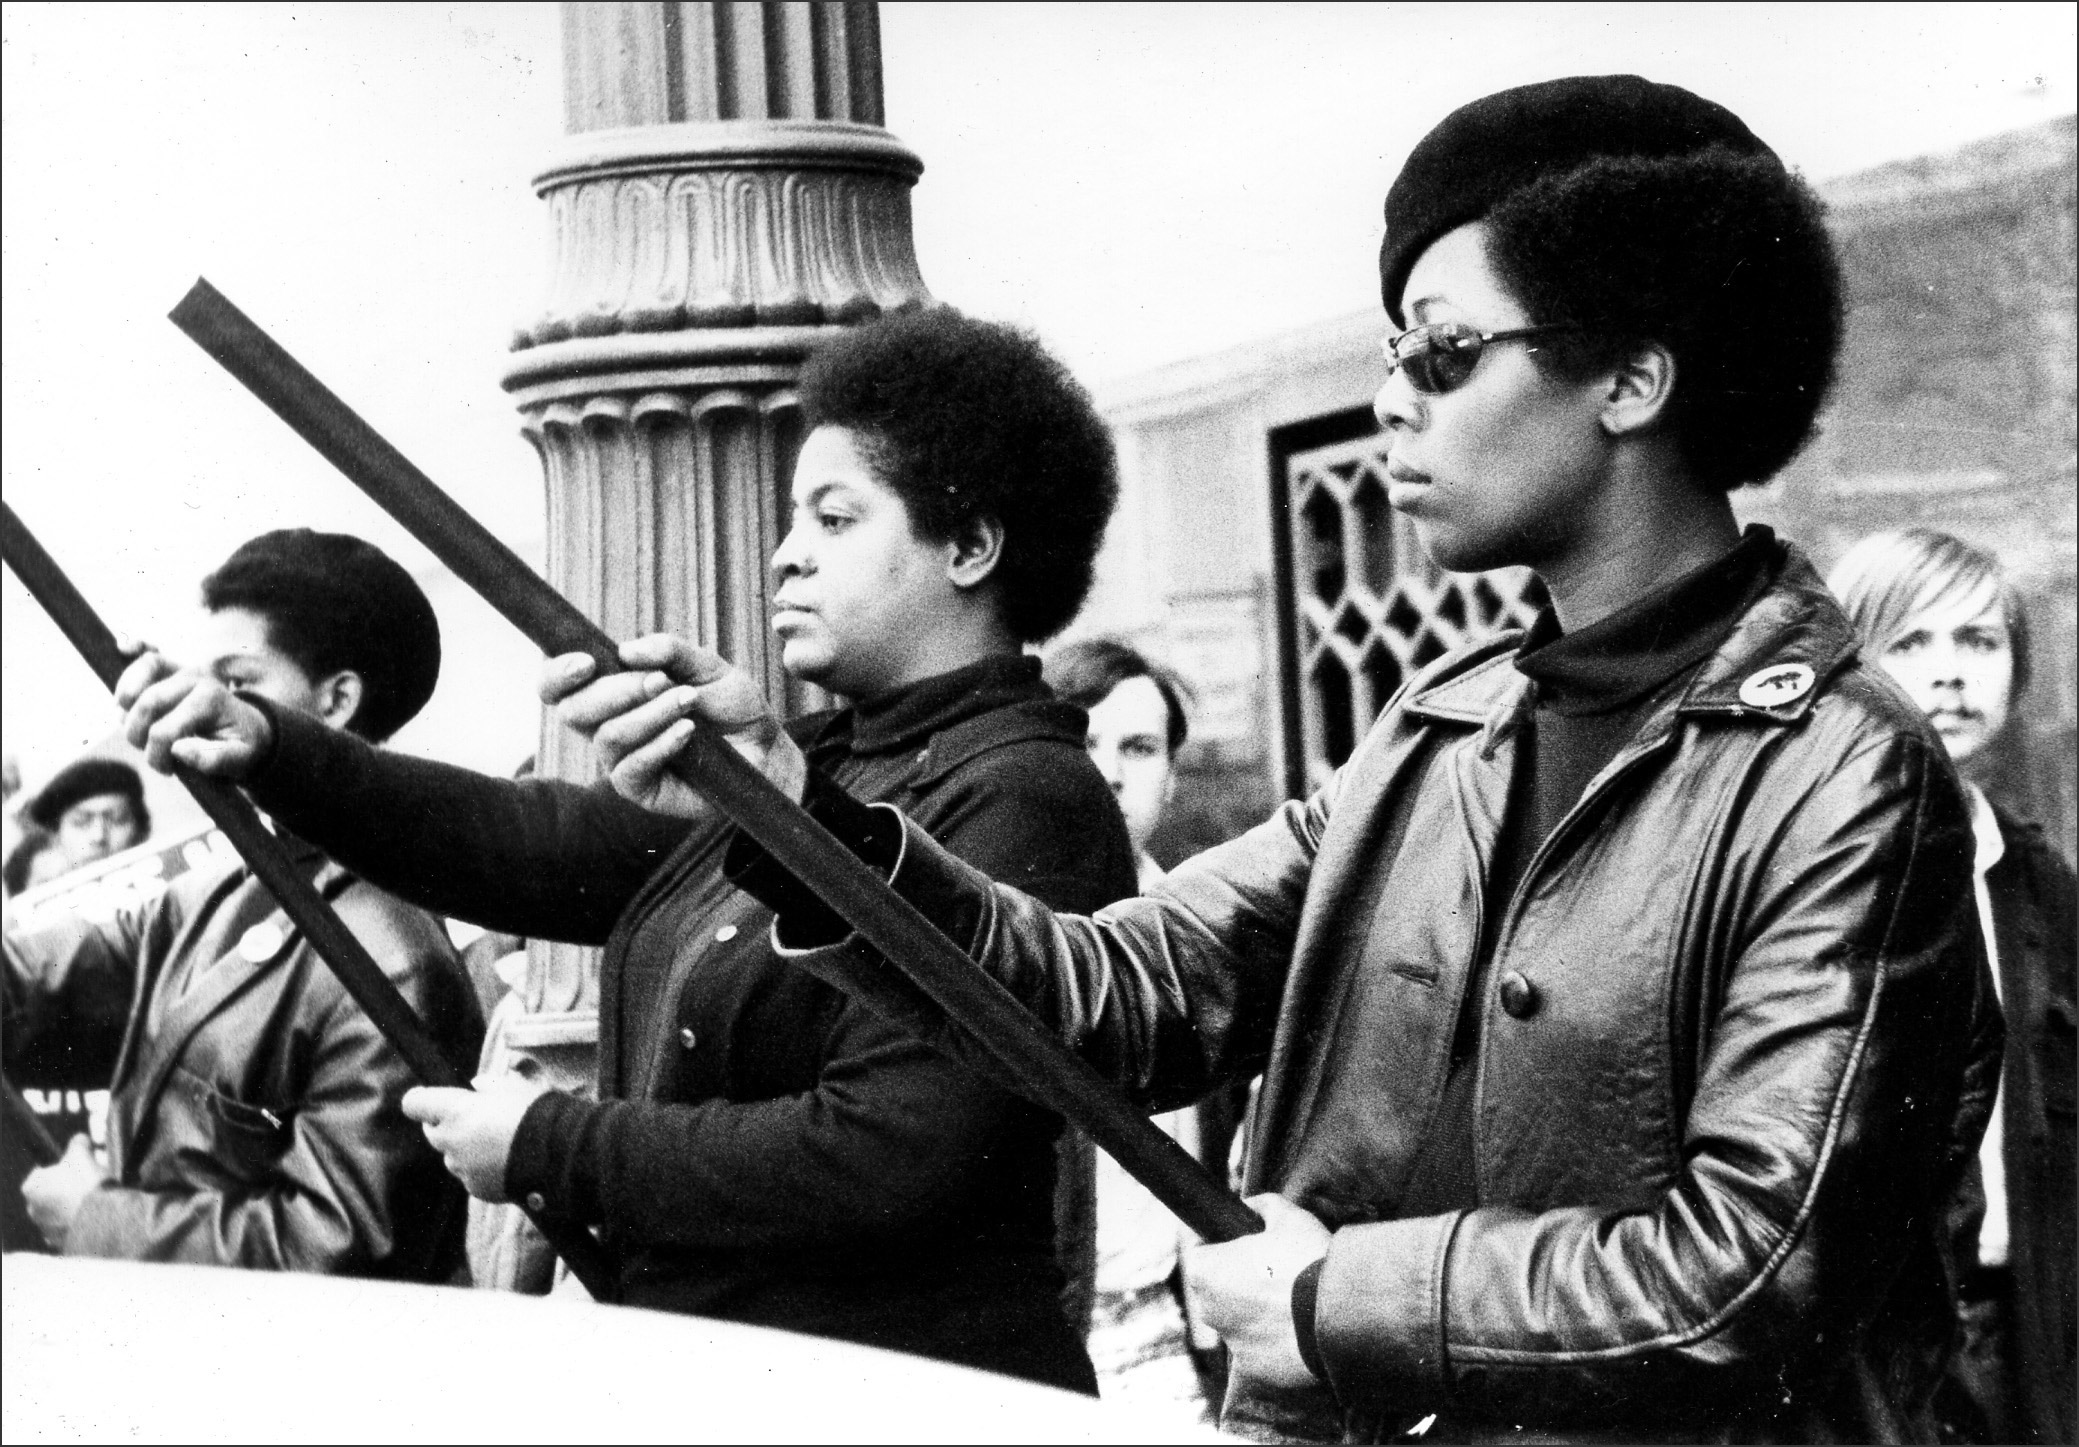 a history of the black panther party The black panther party for self defense was formed to protect black individuals and neighborhoods from police brutality this 1966 photo features the six original.